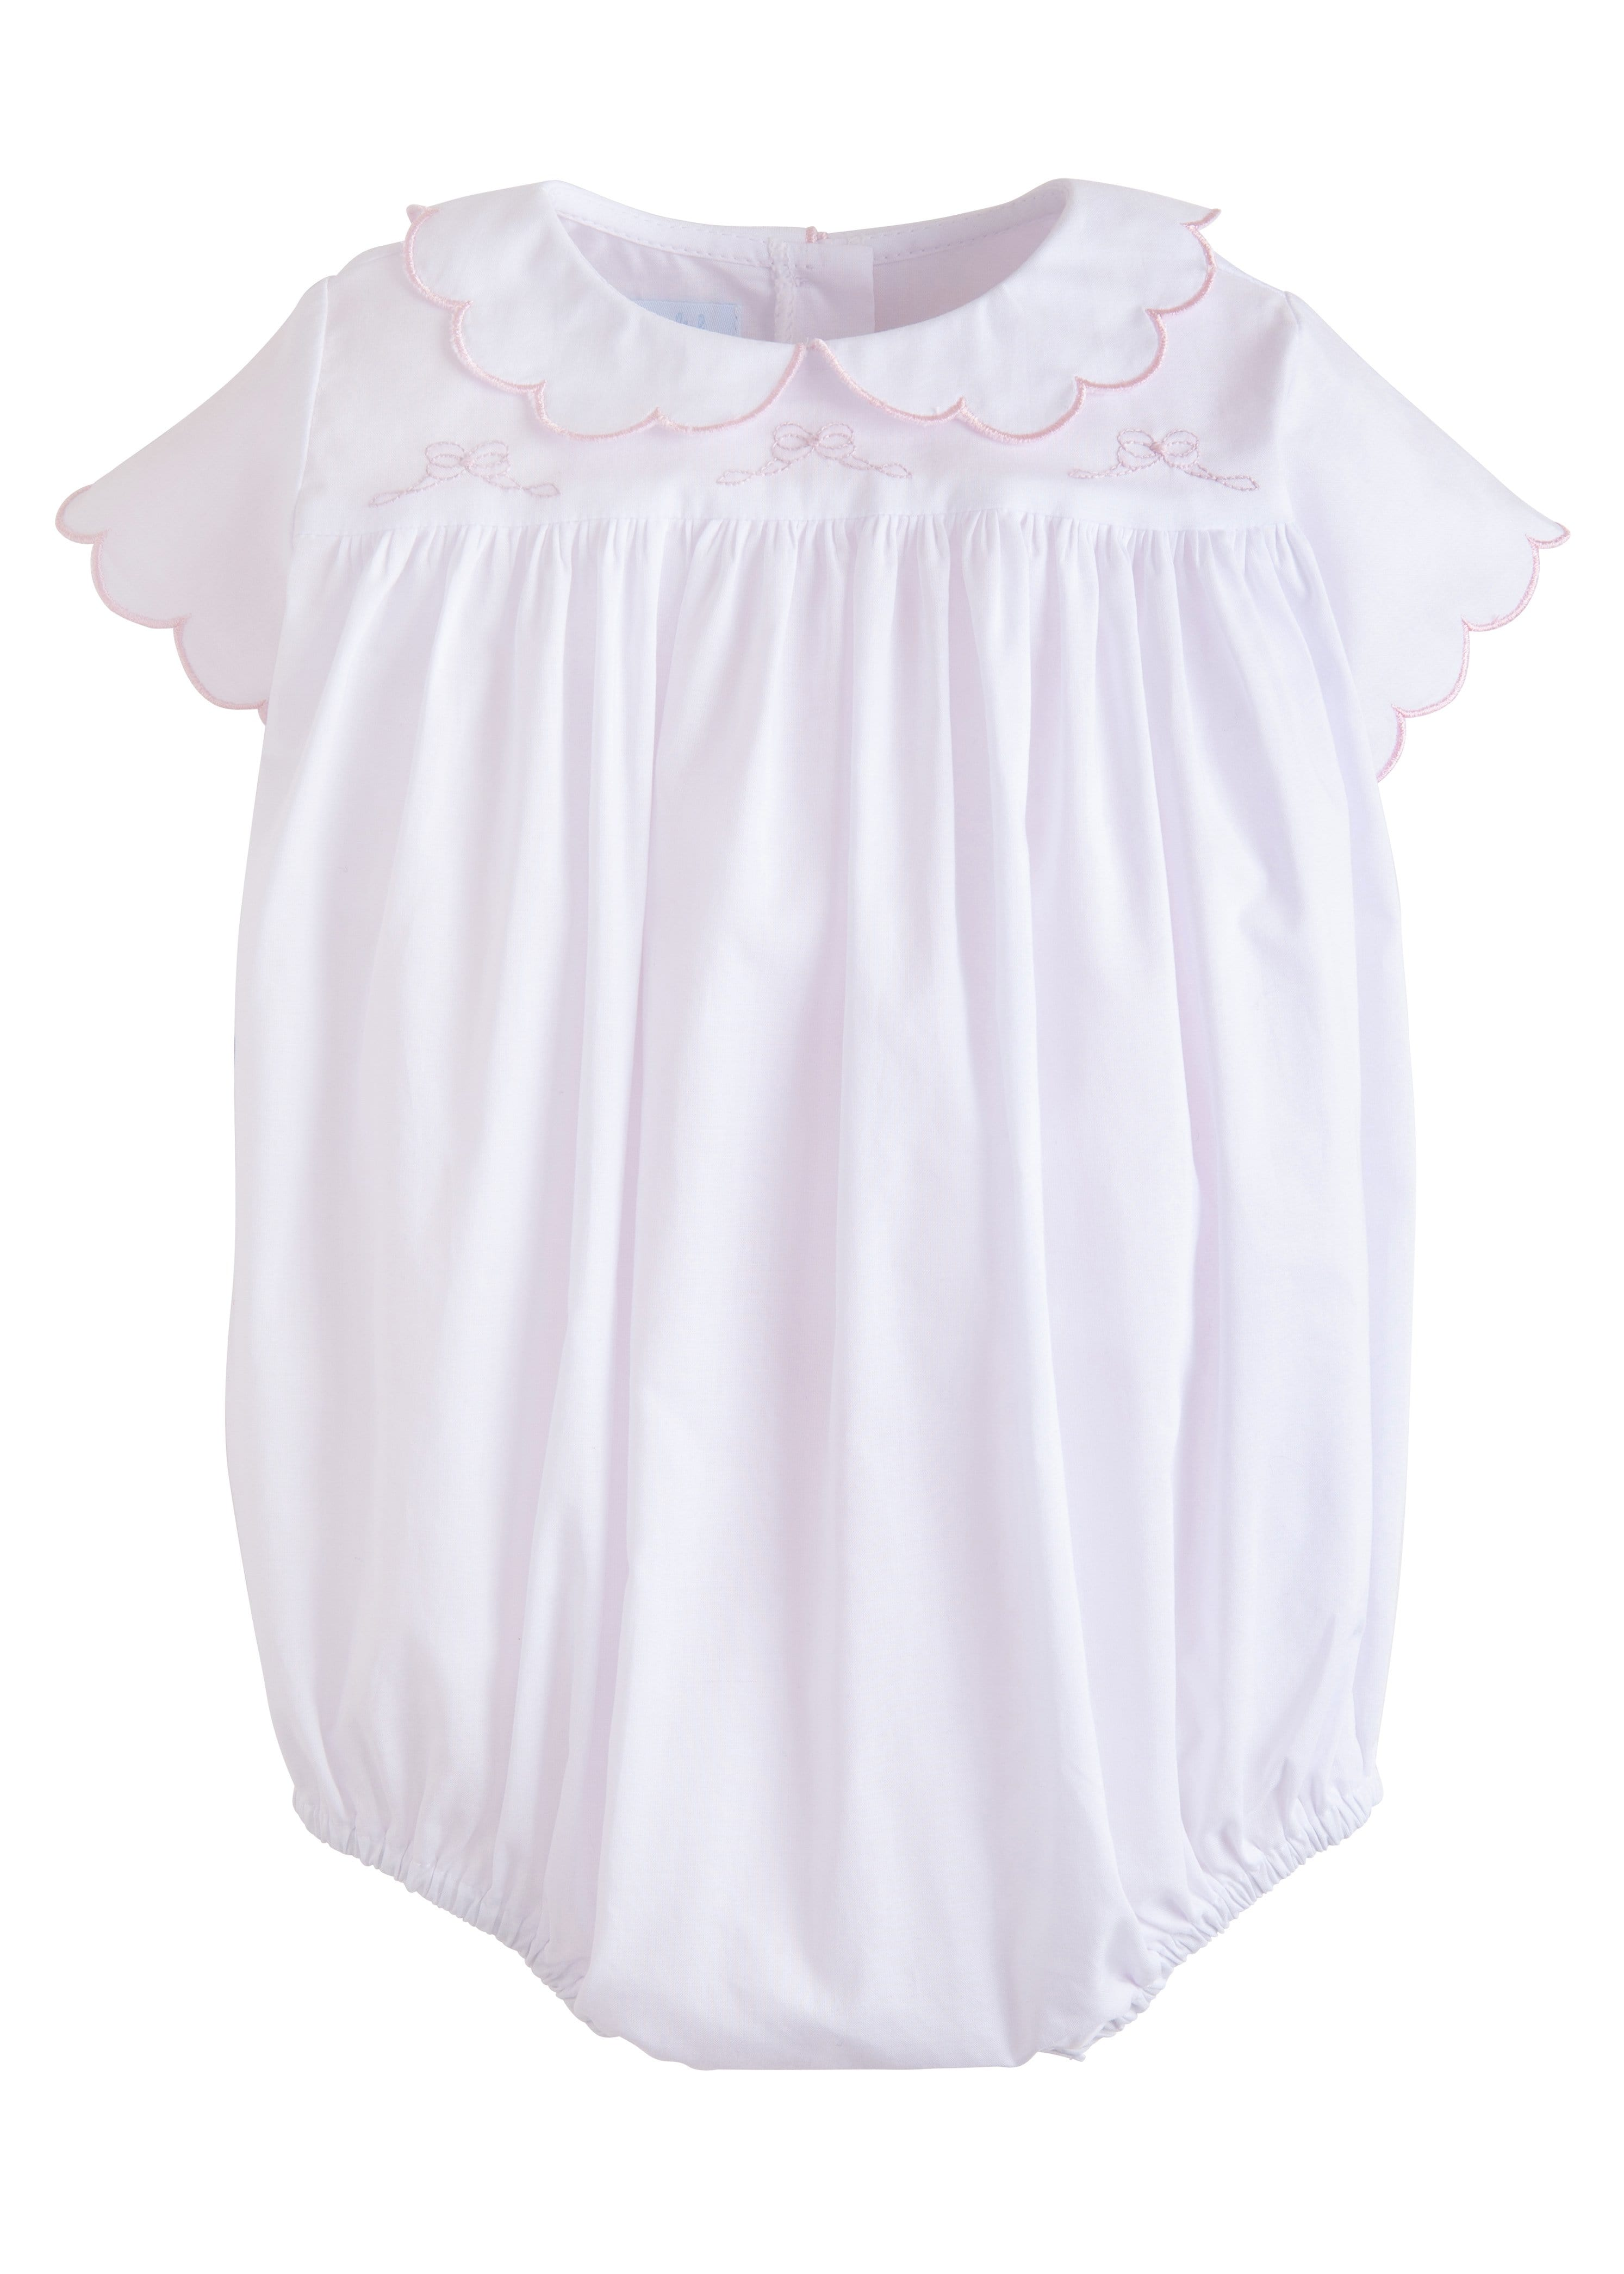 Little English traditional baby gift, girls embroidered bow bubble